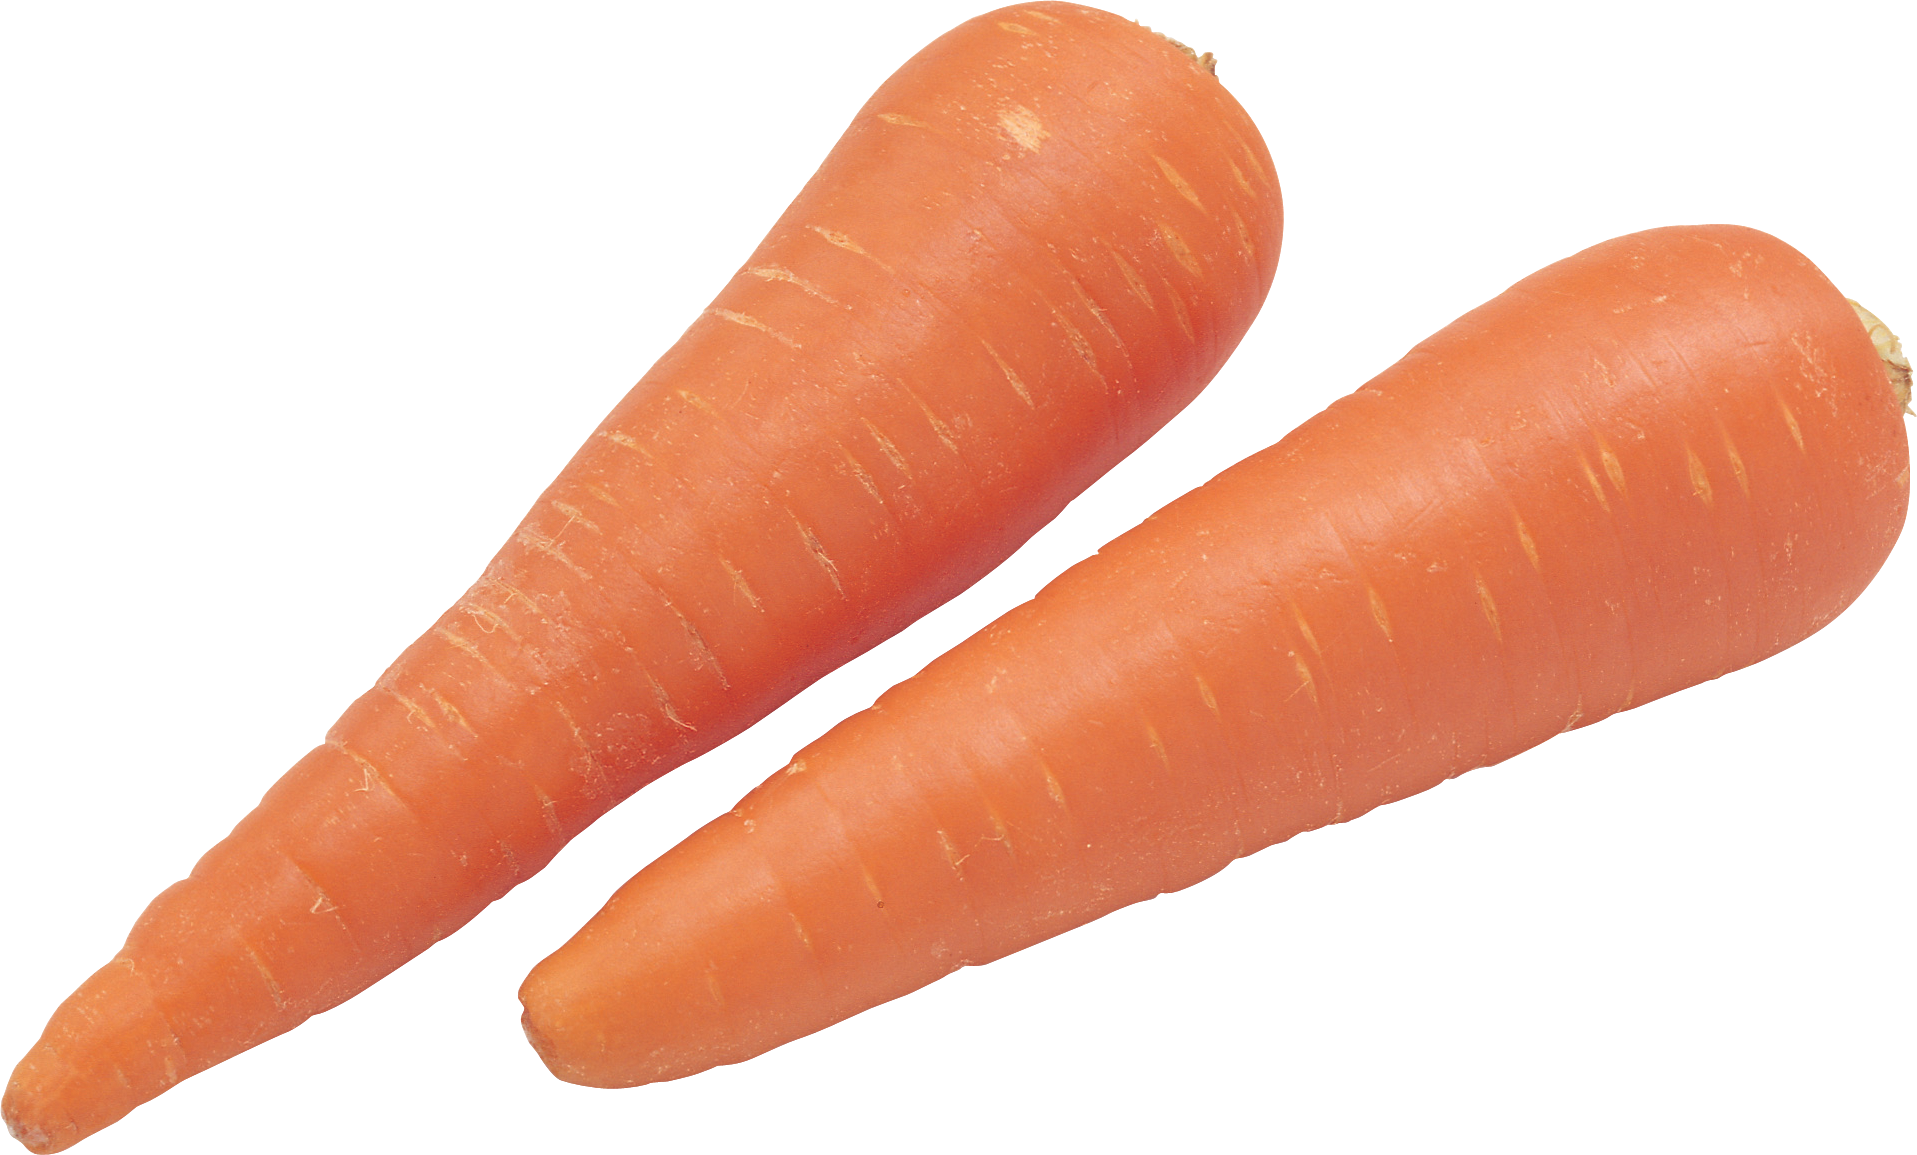 Carrot Png - ClipArt Best